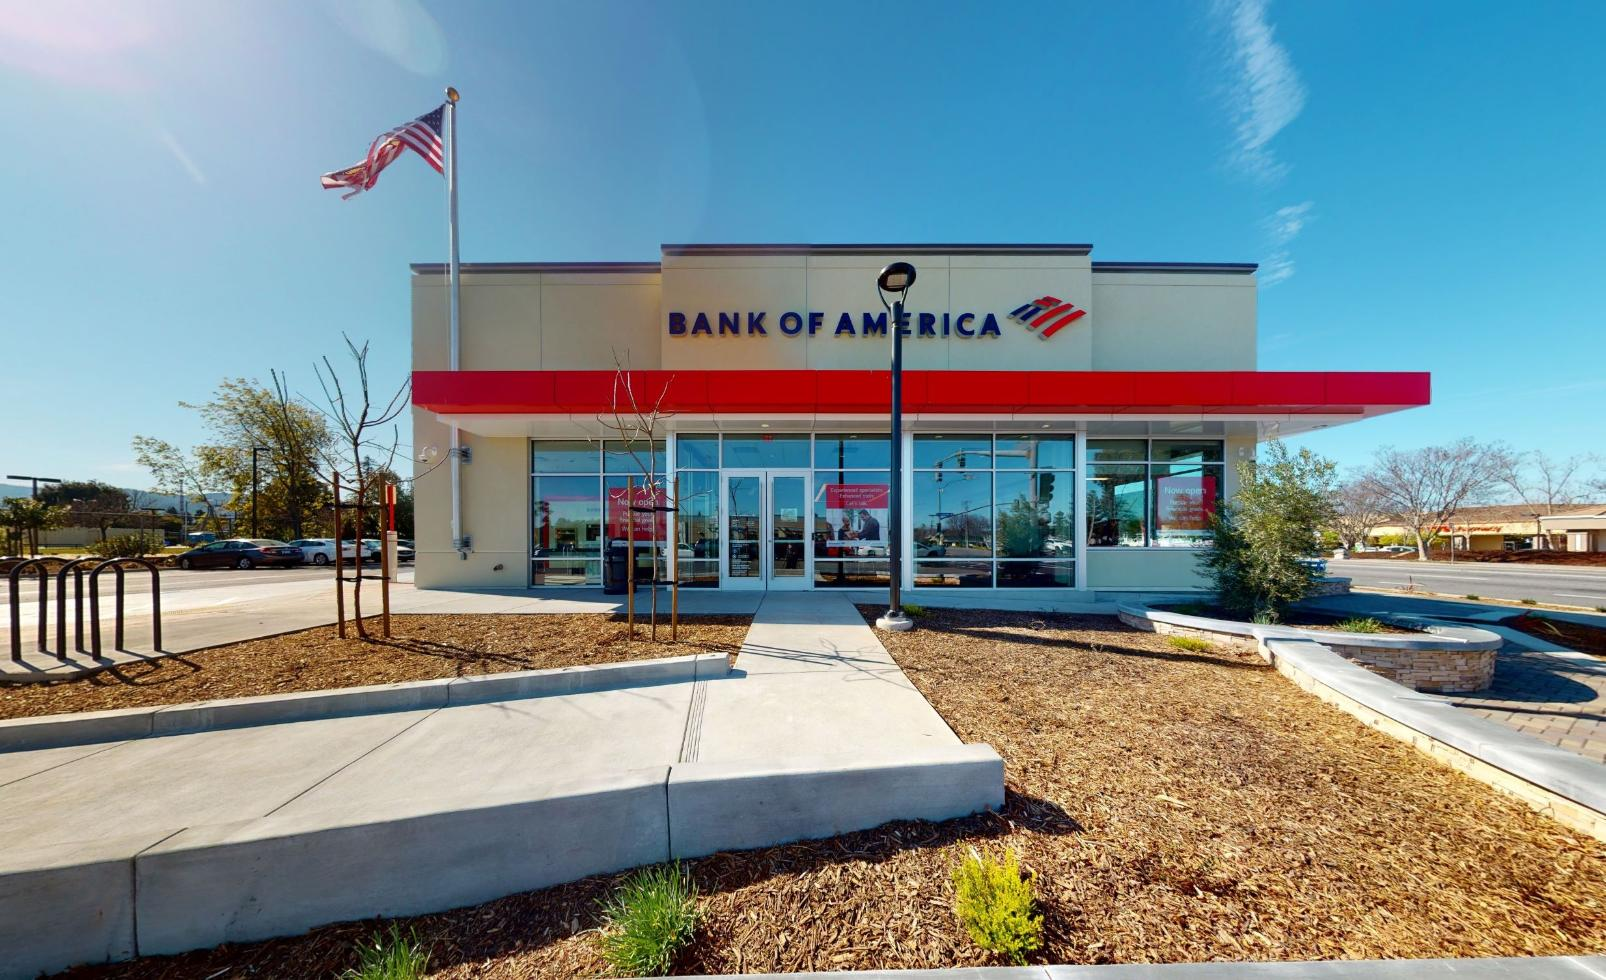 Bank of America financial center with walk-up ATM   21020 Homestead Rd, Cupertino, CA 95014